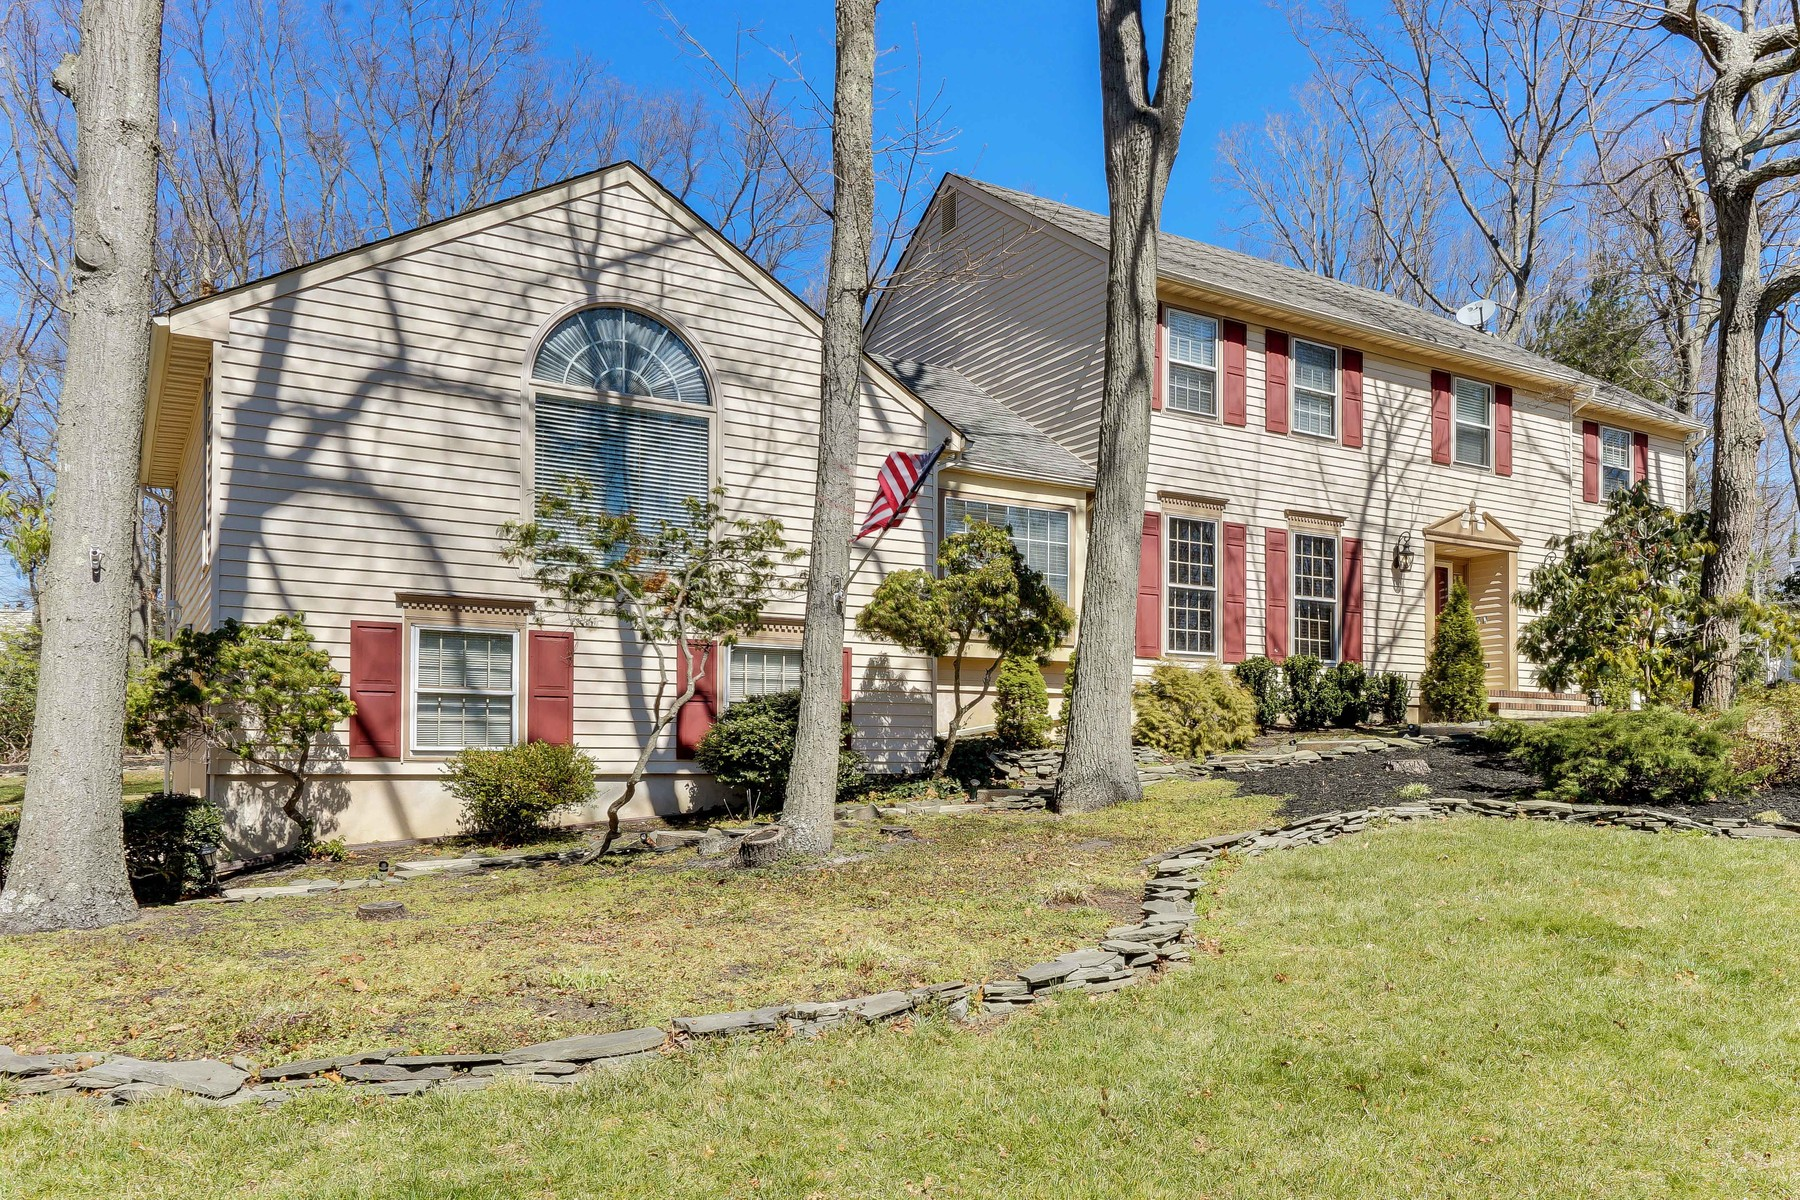 Single Family Home for Sale at Spacious Manasquan Colonial 1530 Toboggan Run Manasquan, New Jersey, 08736 United States